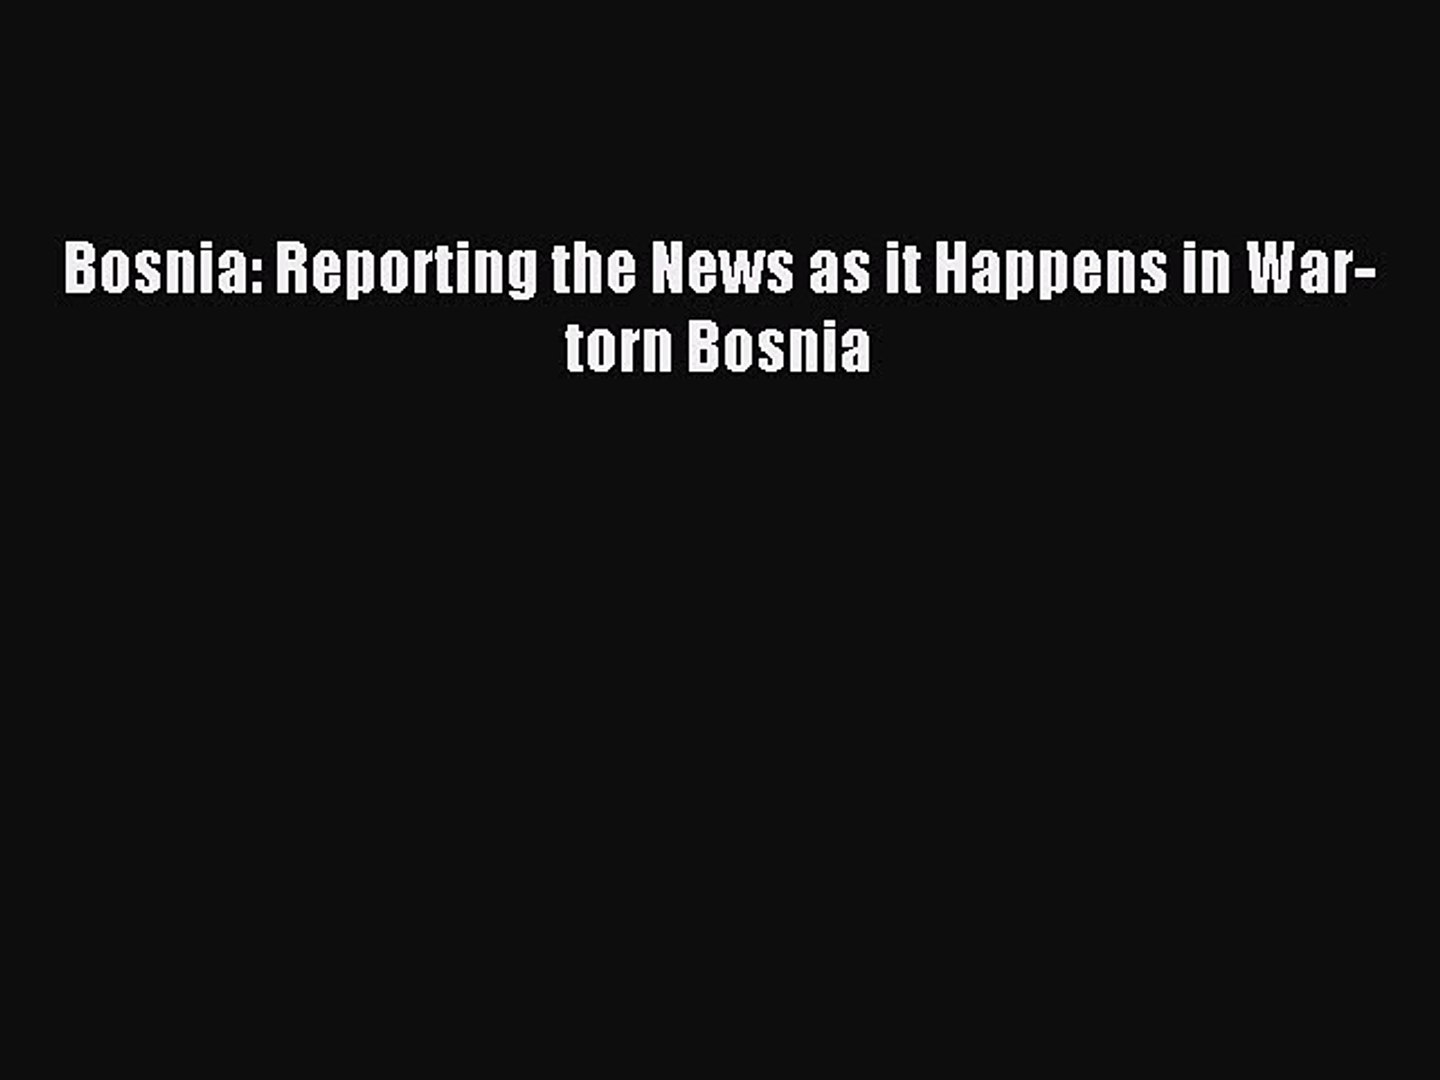 [PDF] Bosnia: Reporting the News as it Happens in War-torn Bosnia Download Online